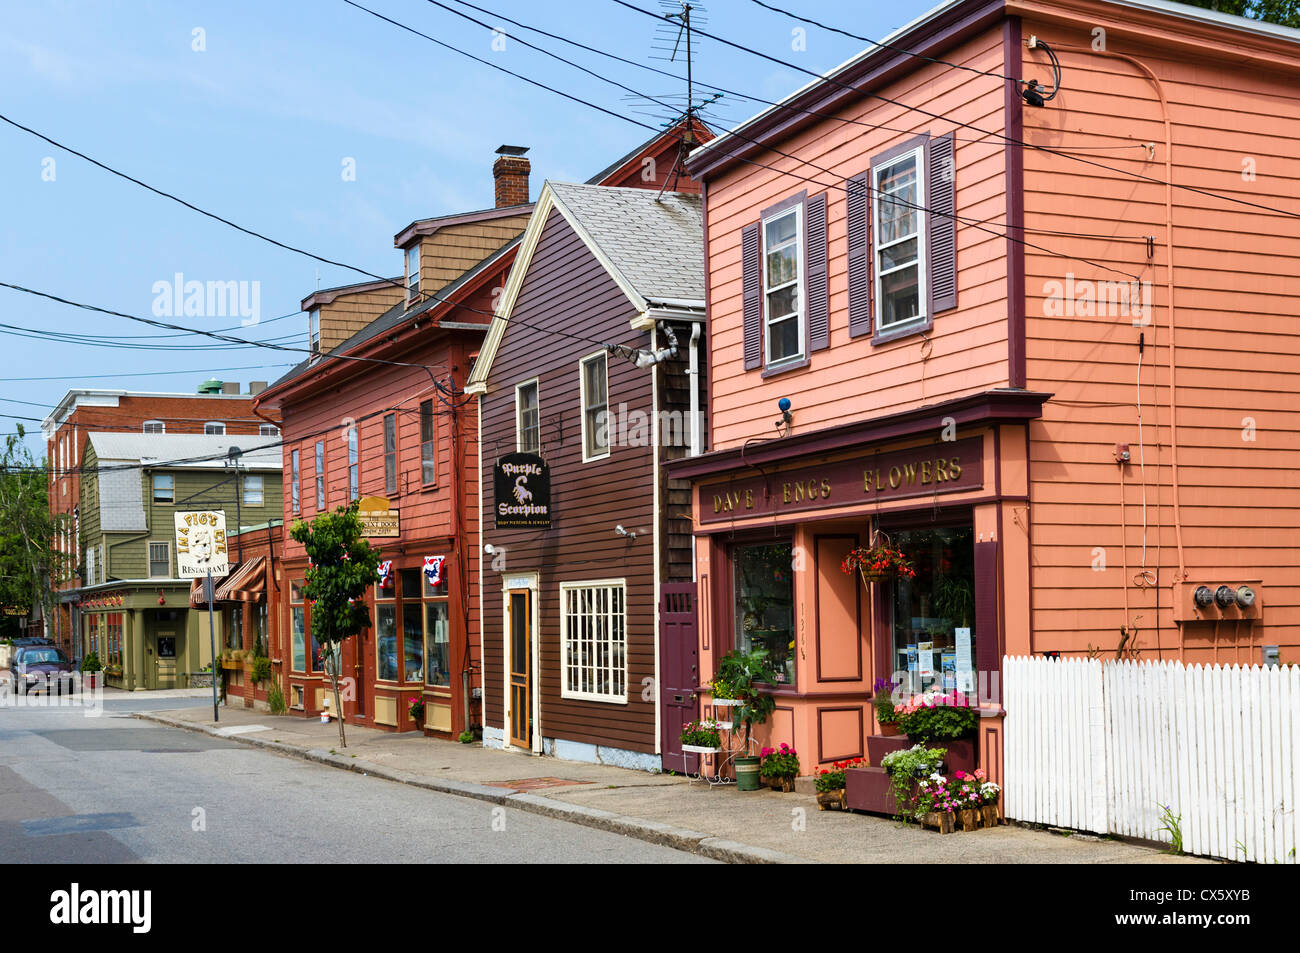 Historic shops and houses, Derby Street, Salem, Massachusetts, USA - Stock Image